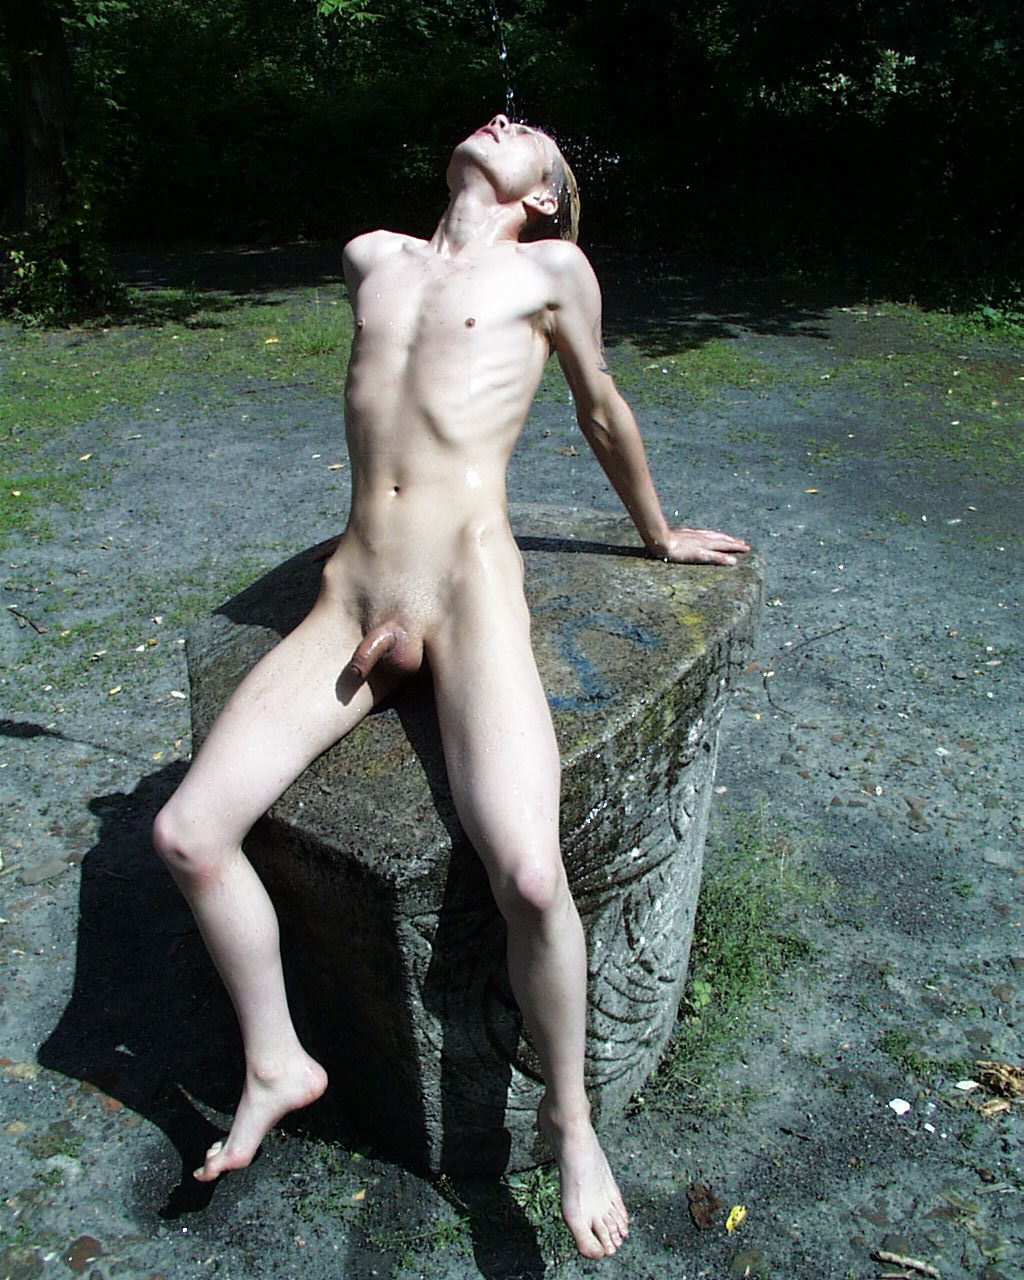 Nudist outdoors male gay sex photos in this